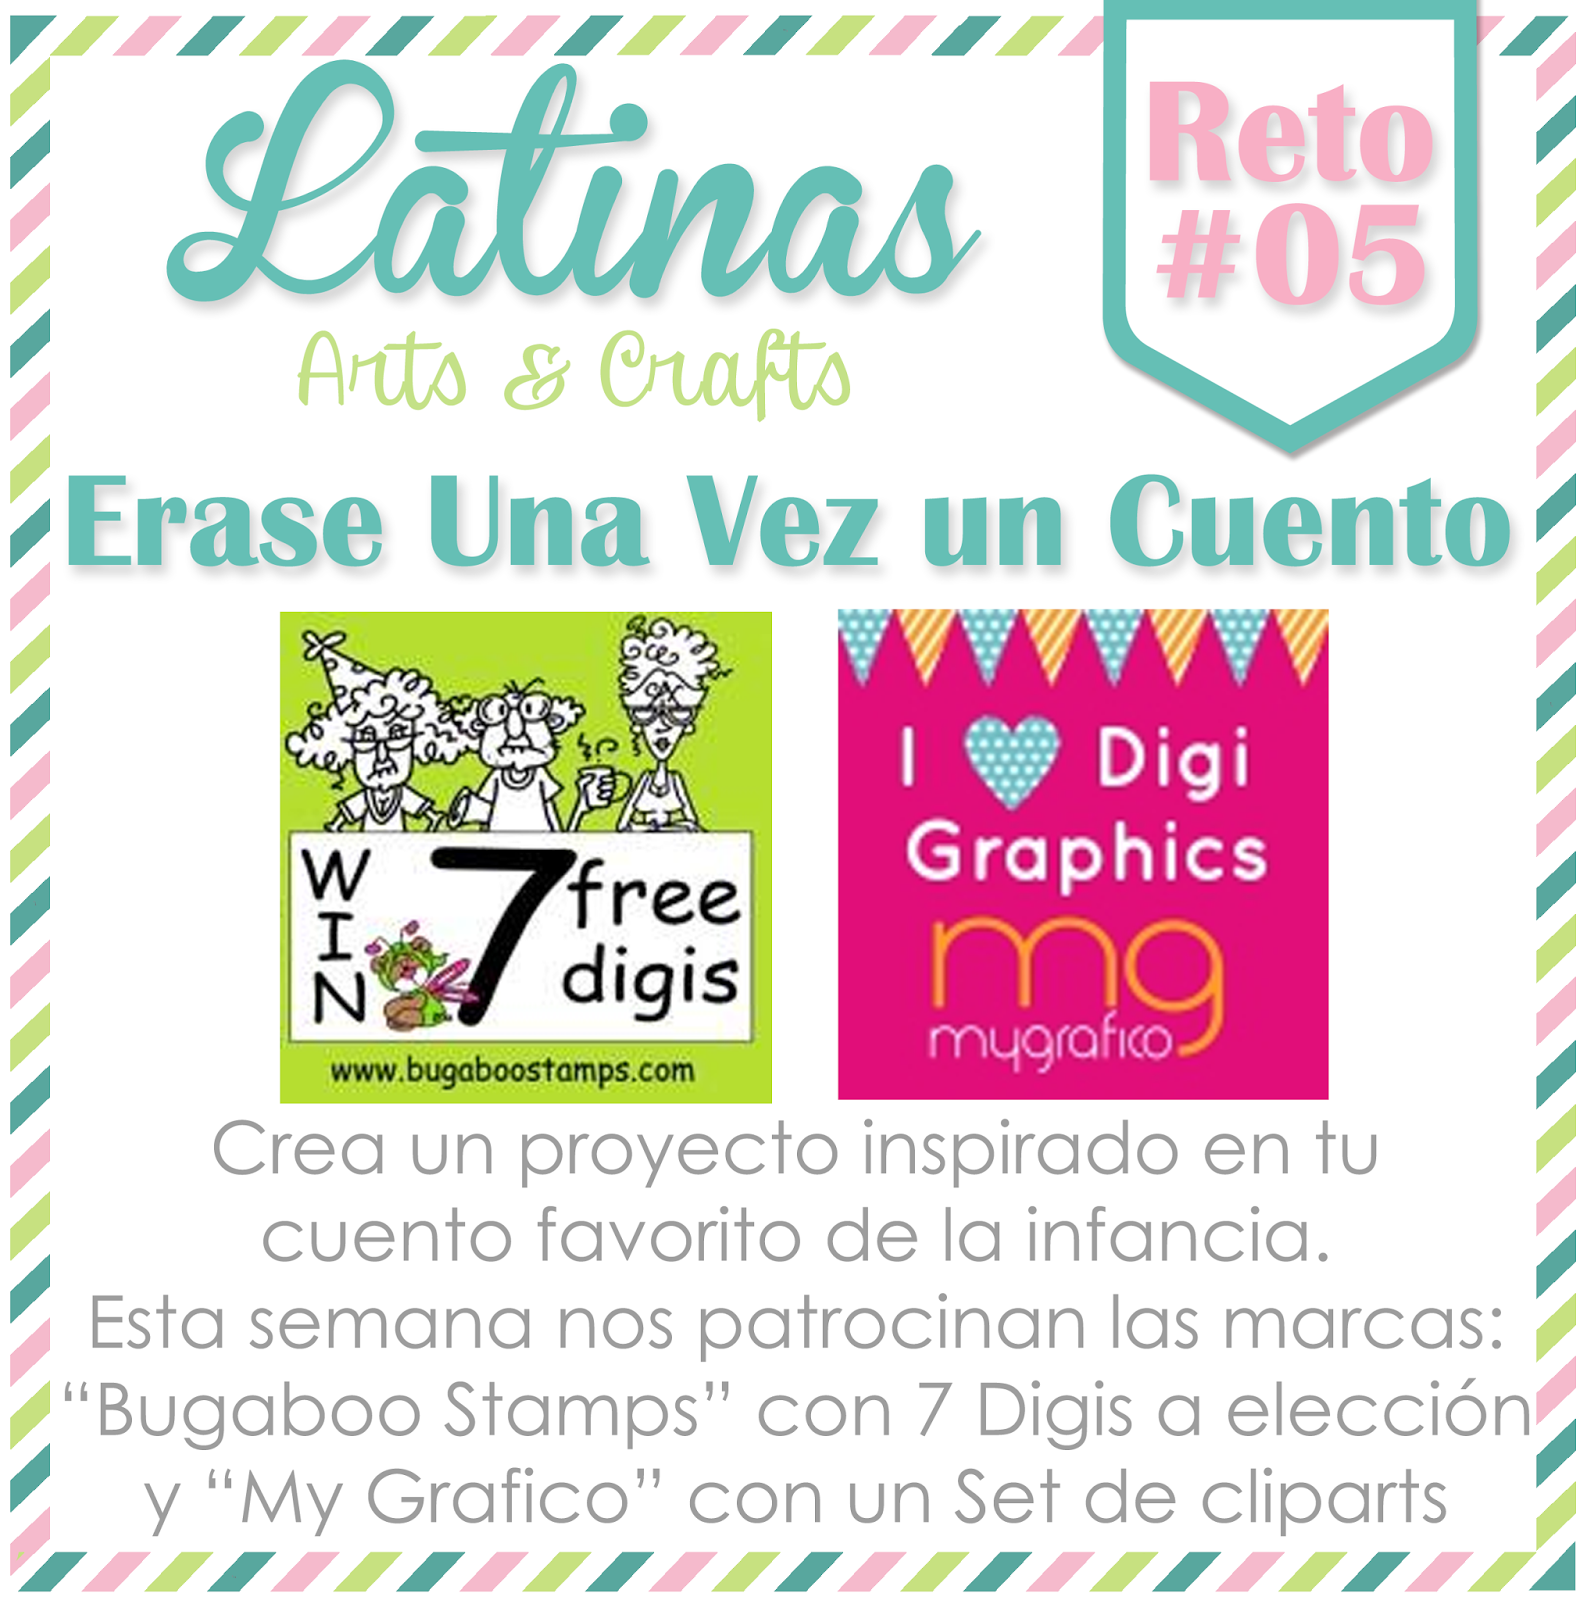 Latinas Arts and Crafts: Reto 05: Erase una Vez un Cuento